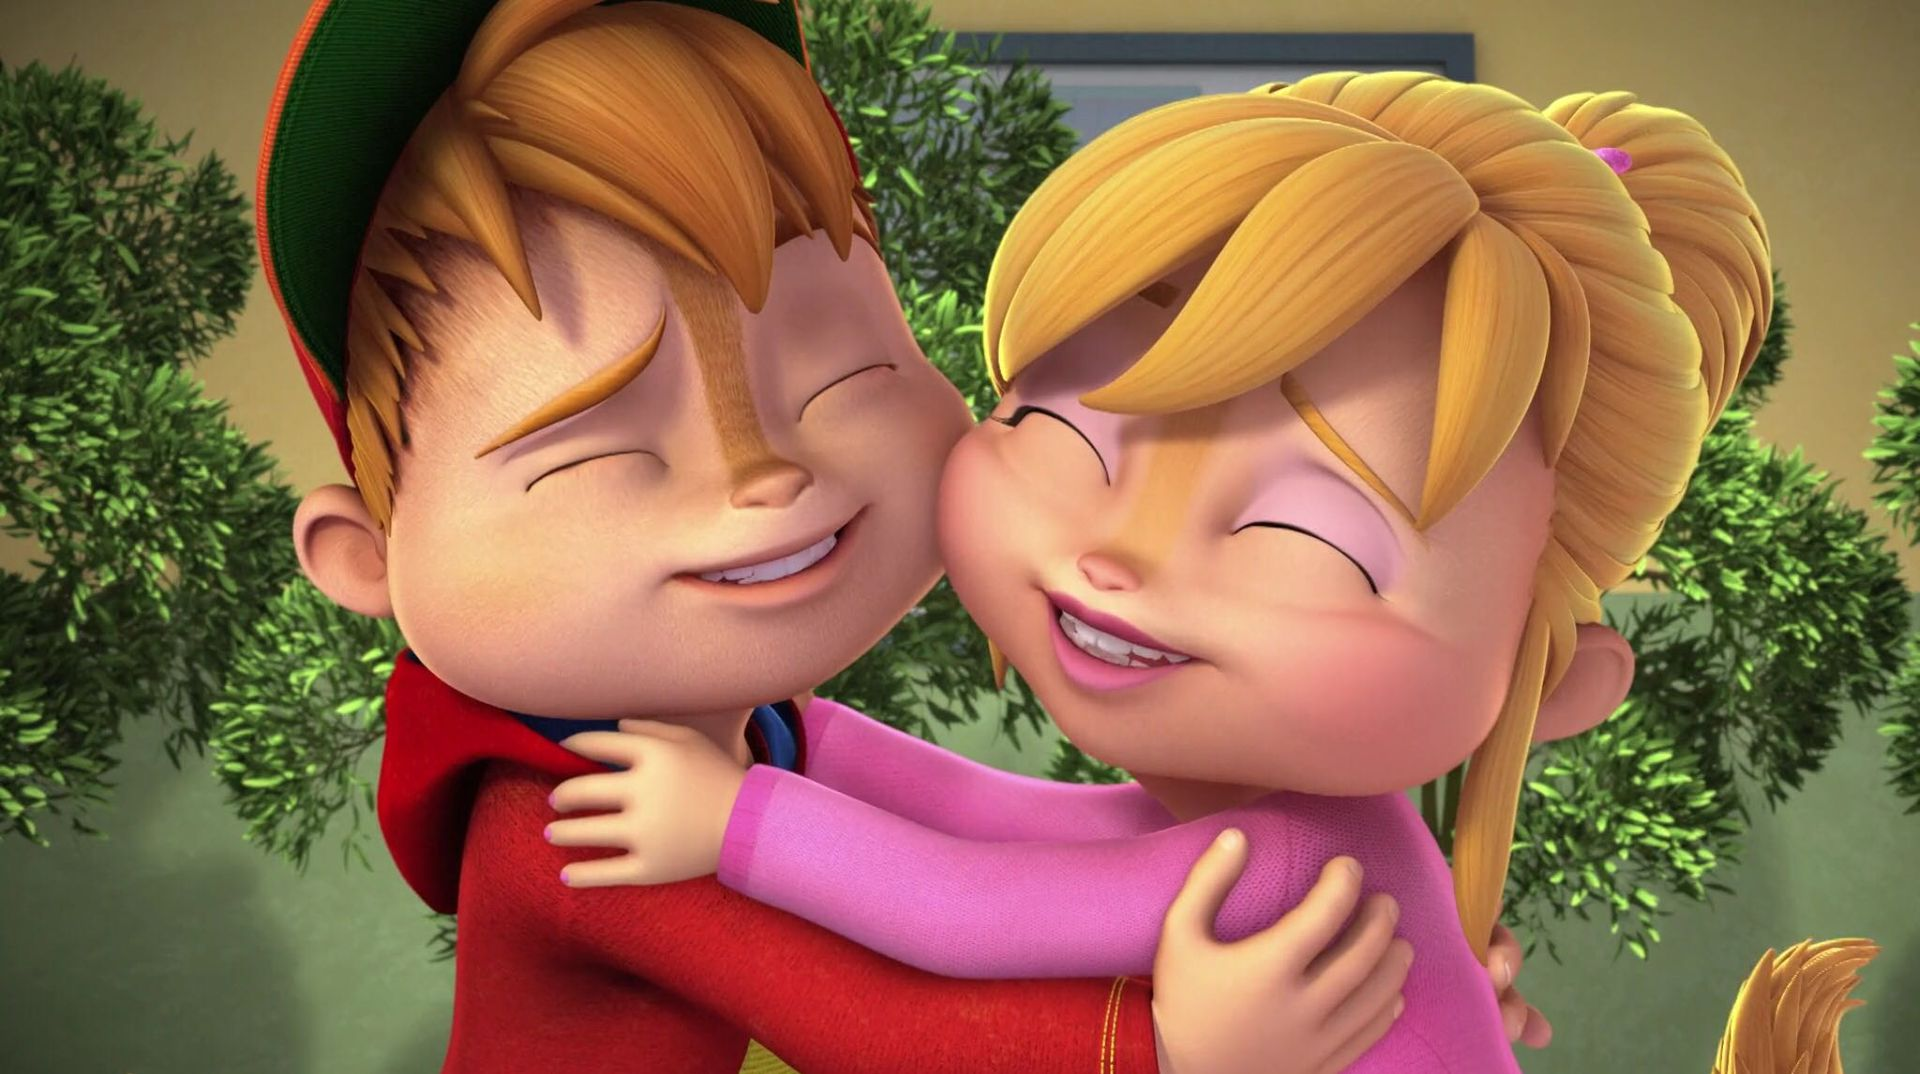 Alvin And The Chipmunks Alvin And Brittany falling for you - chapter 4: dave finds out - wattpad